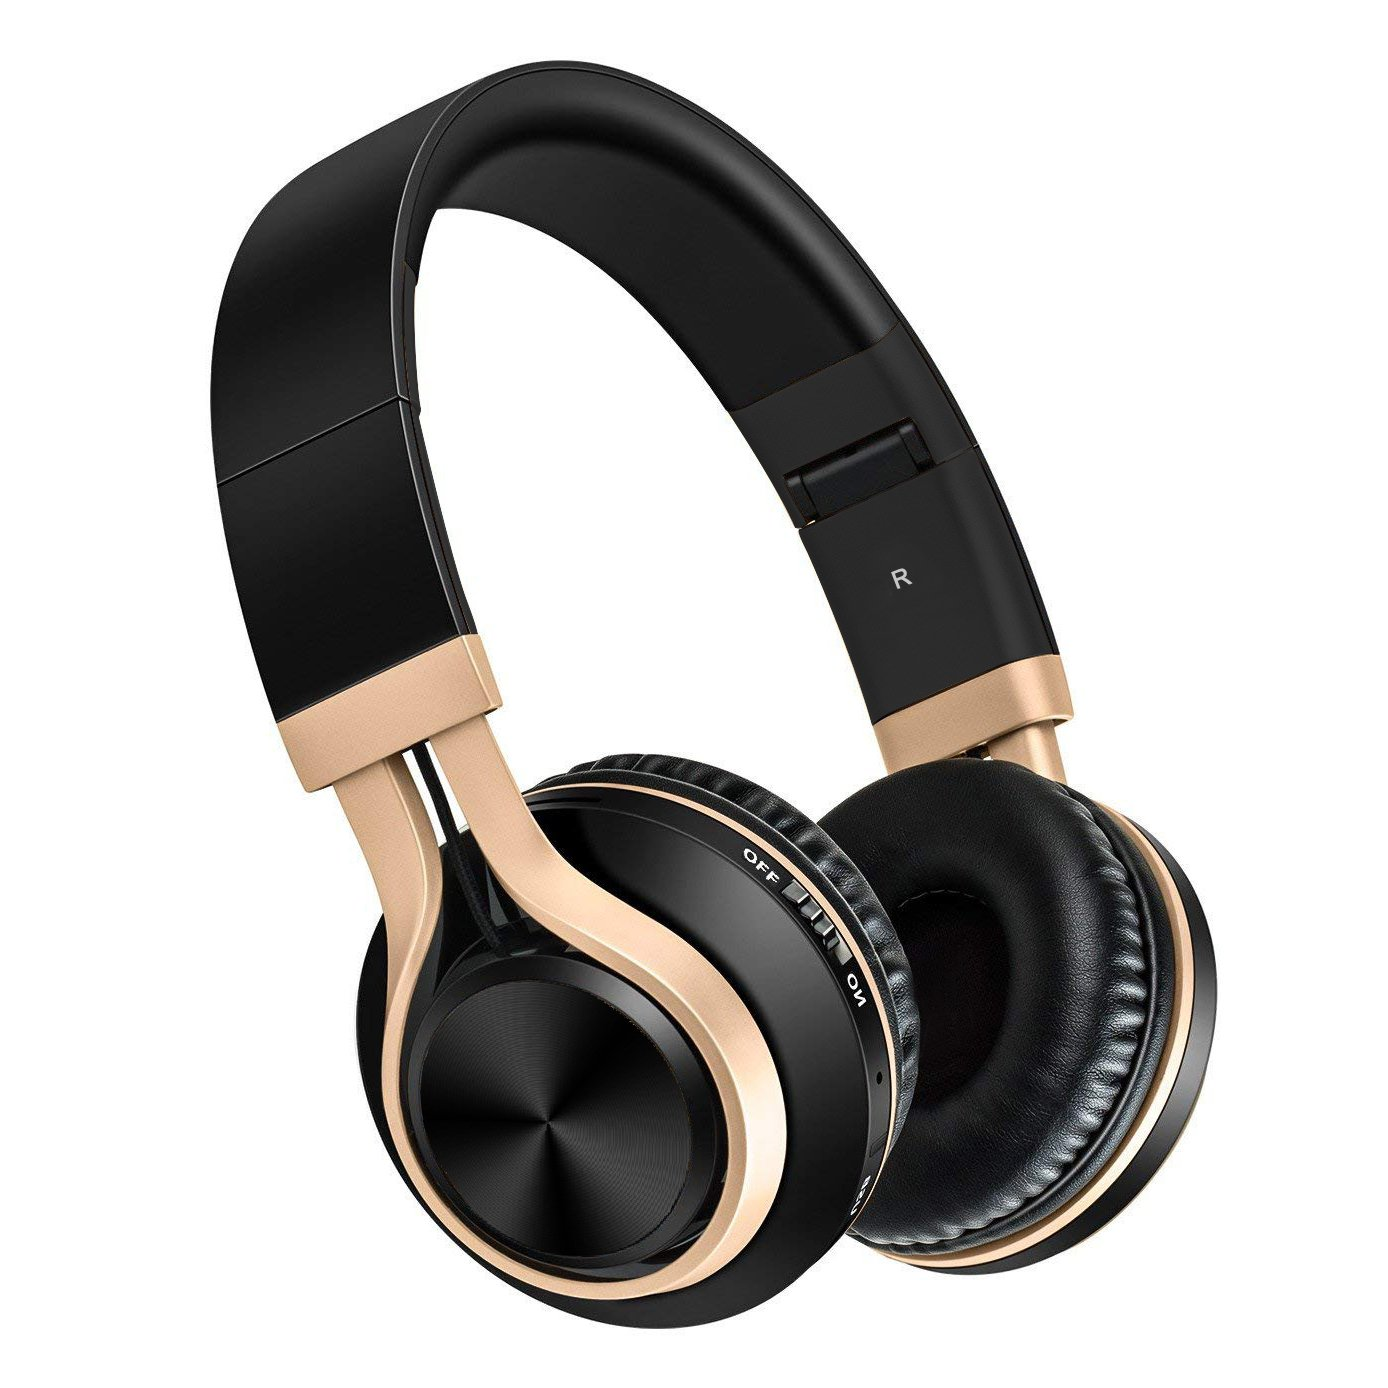 Baseman Foldable Wireless Bluetooth Headphones V4.2 Over-Ear Hi-Fi Stereo Earphones Headsets with Microphone and Wired Mode (Gold)